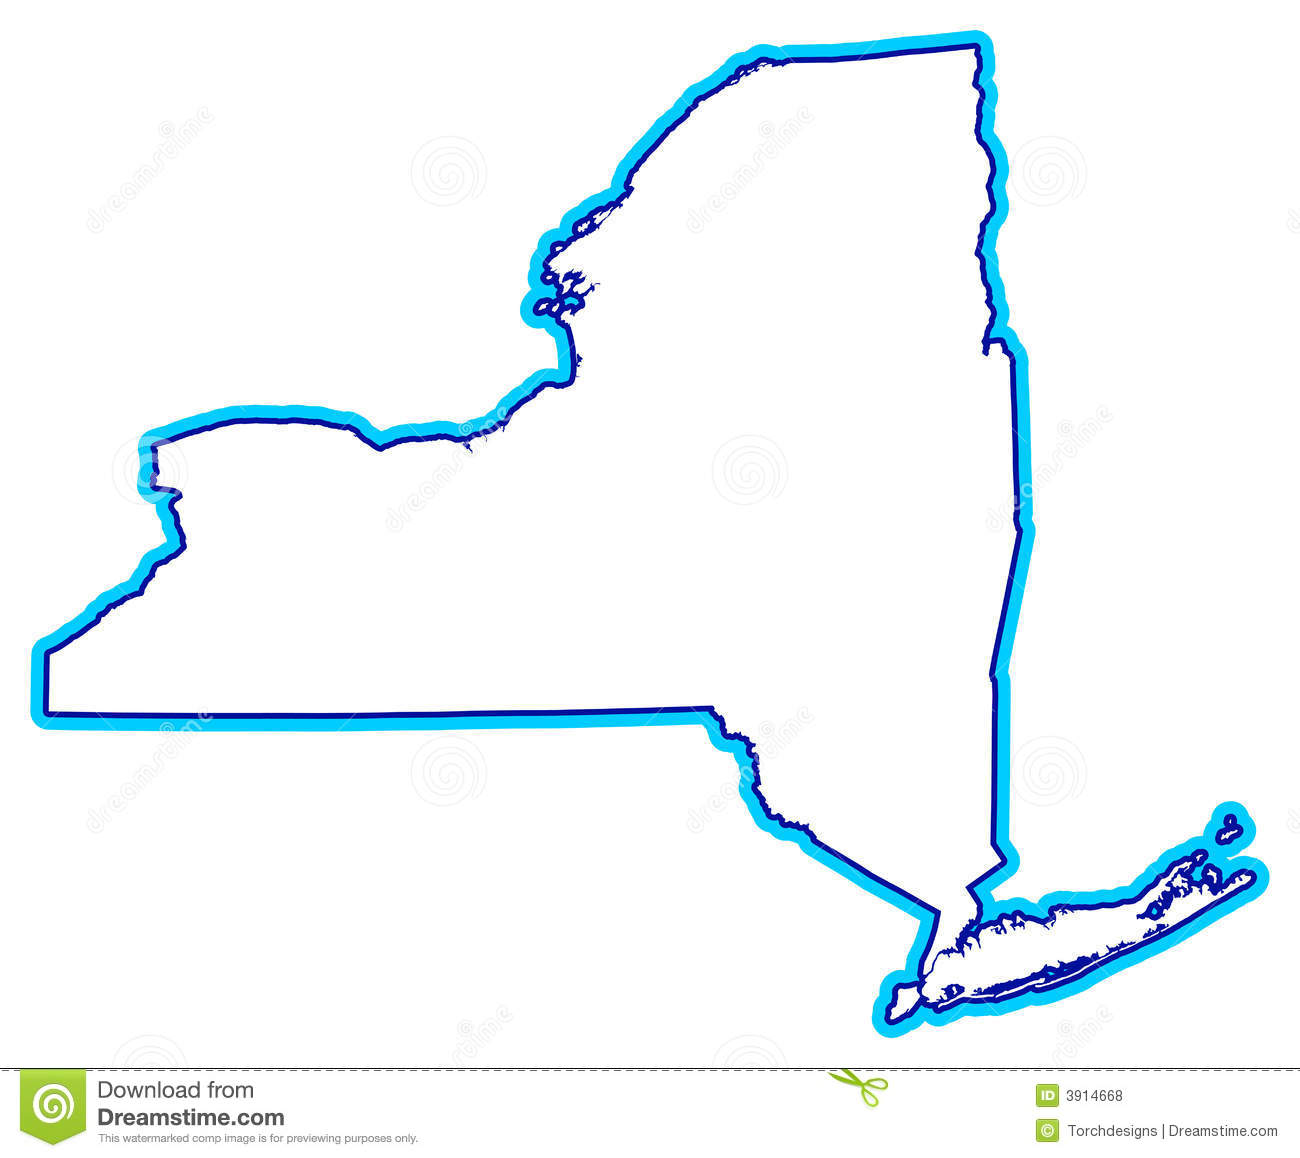 photo regarding Printable Maps of New York State identify Define of Fresh York nation inventory example. Instance